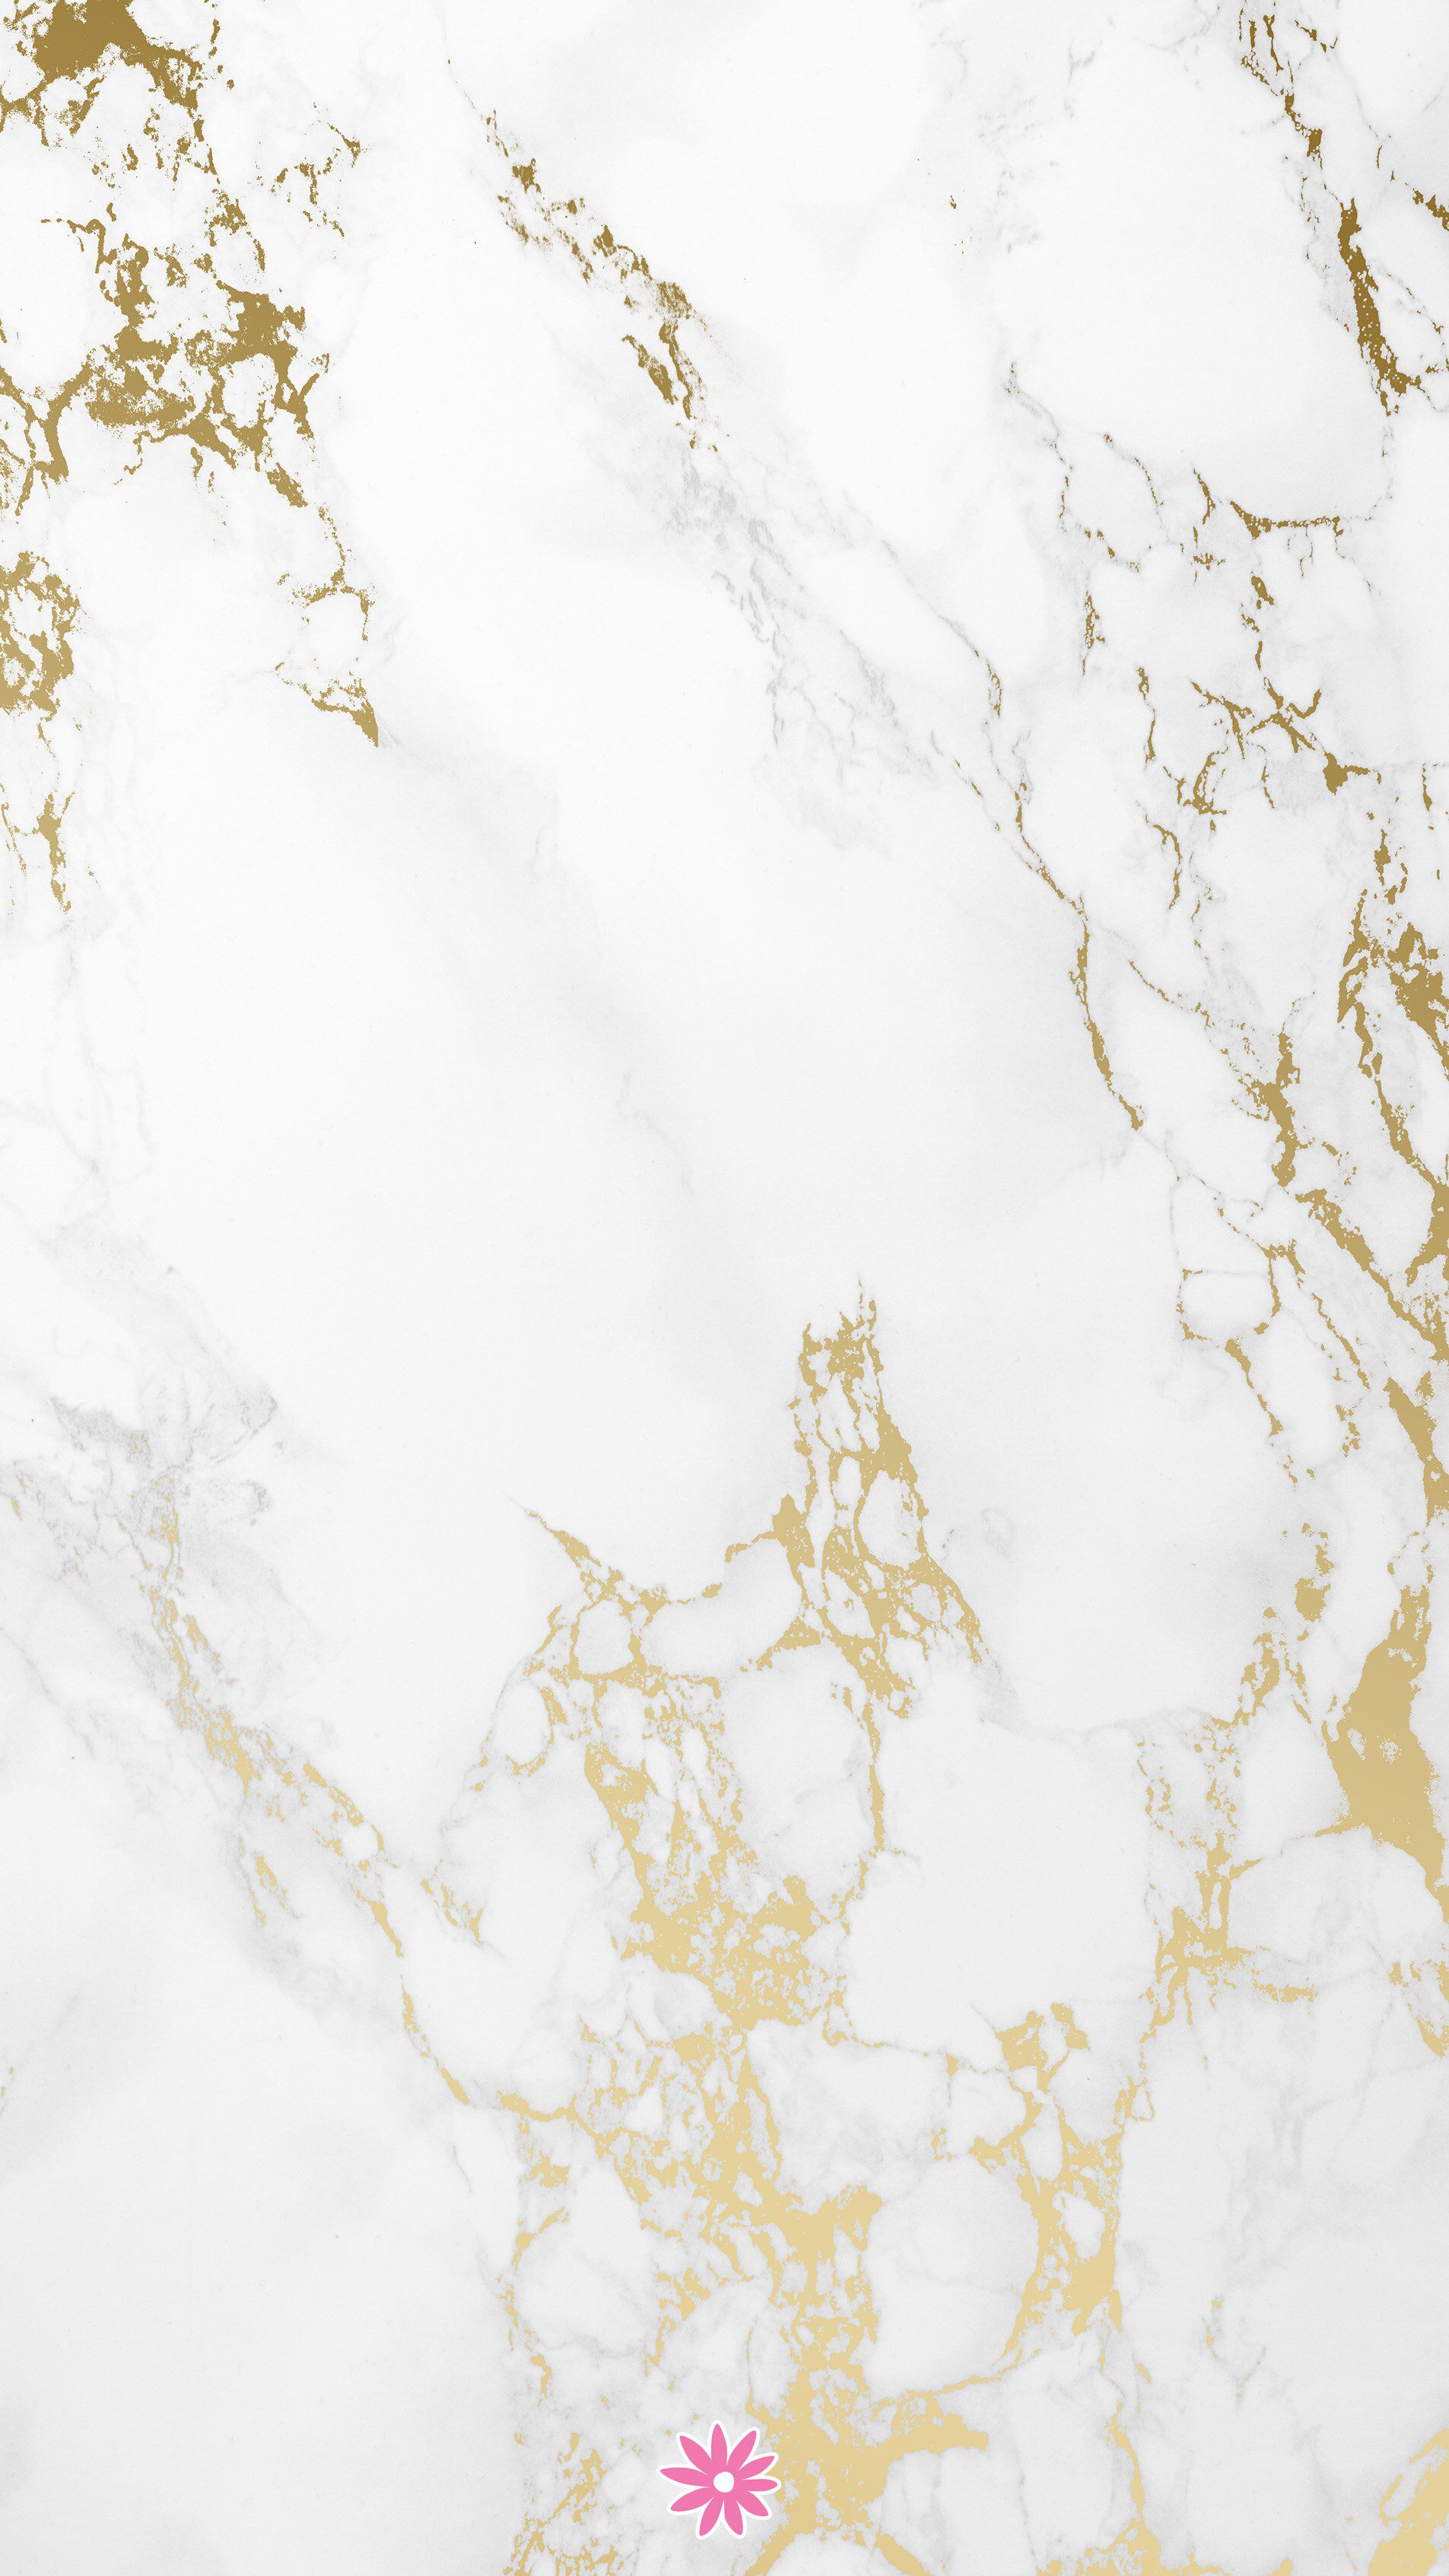 Background Marble Gold Iphone Wallpaper Phone Lockscreen Marble Background Gold Marble Wallpaper Marble Background Iphone